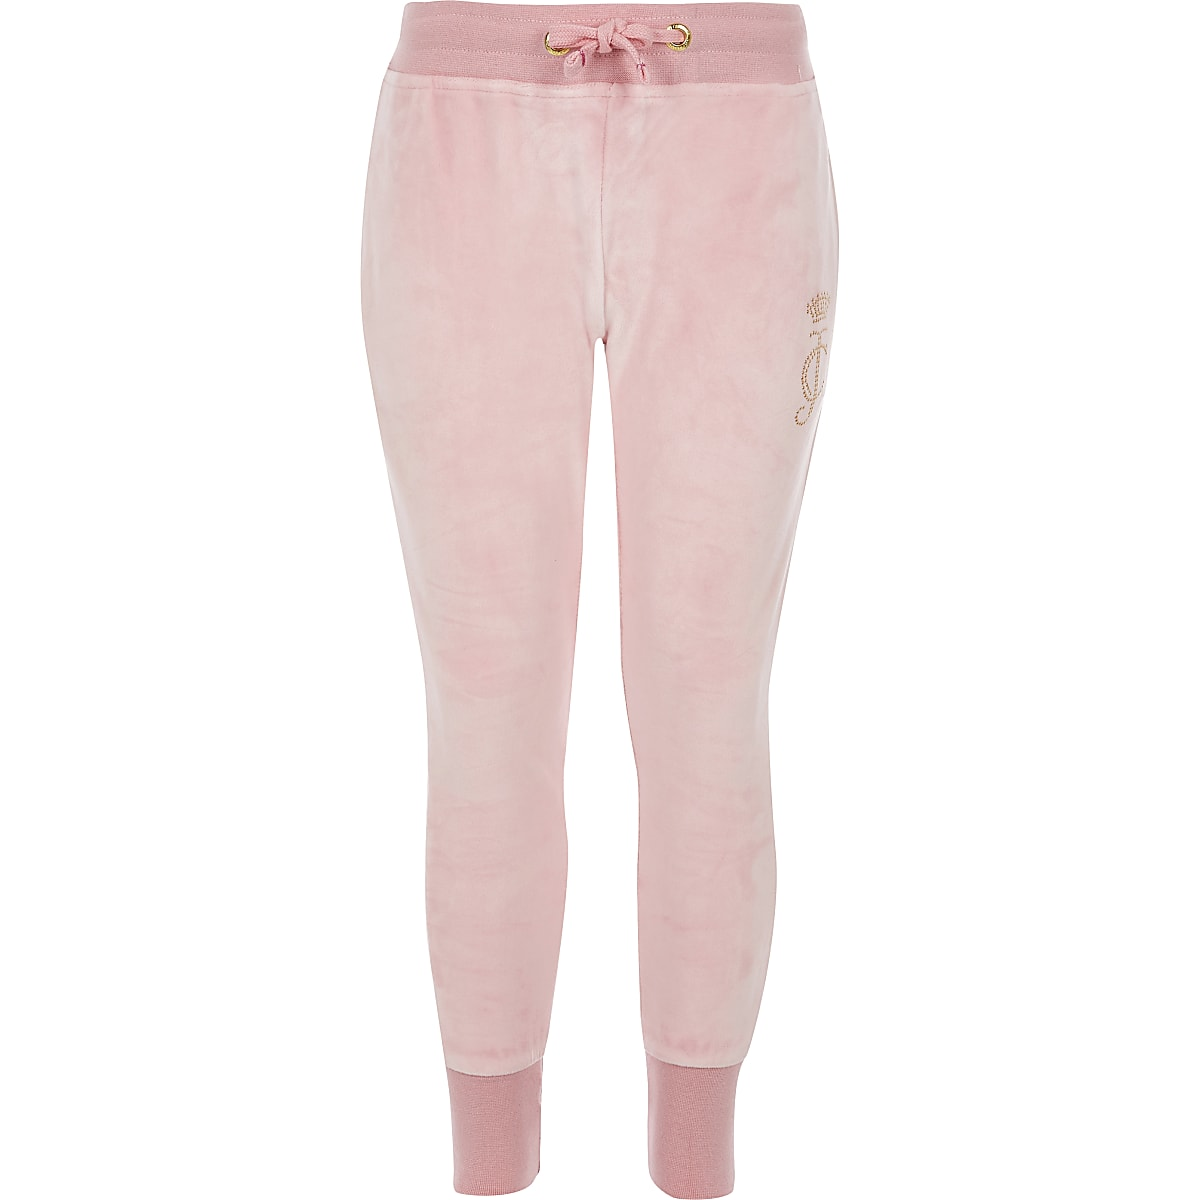 Girls Juicy Couture light pink velour joggers